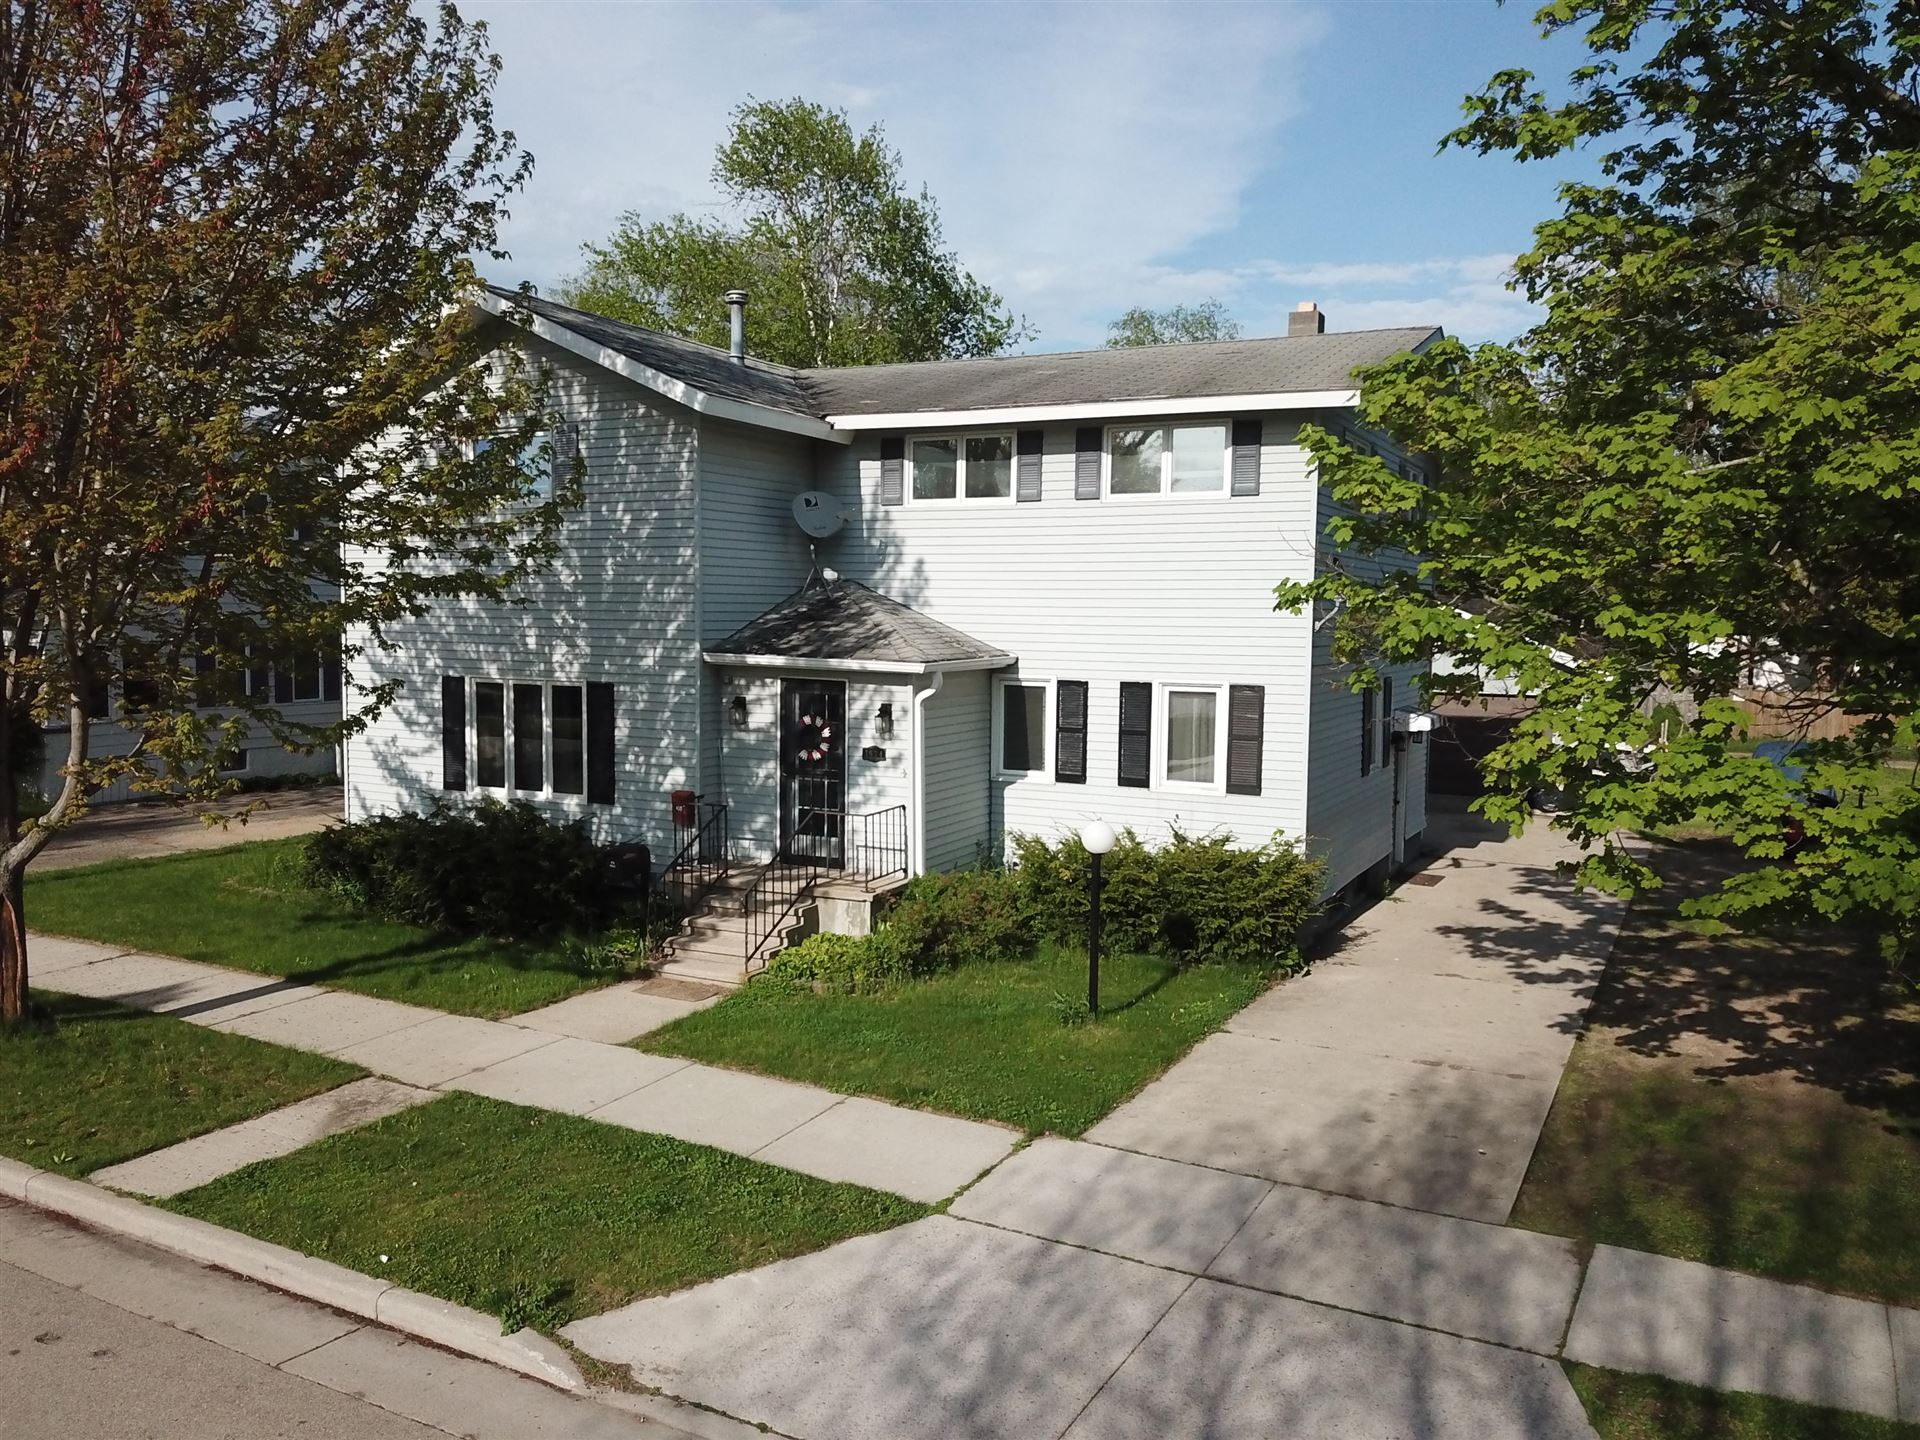 1634 Armstrong, Marinette, WI 54143 - #: 1690657